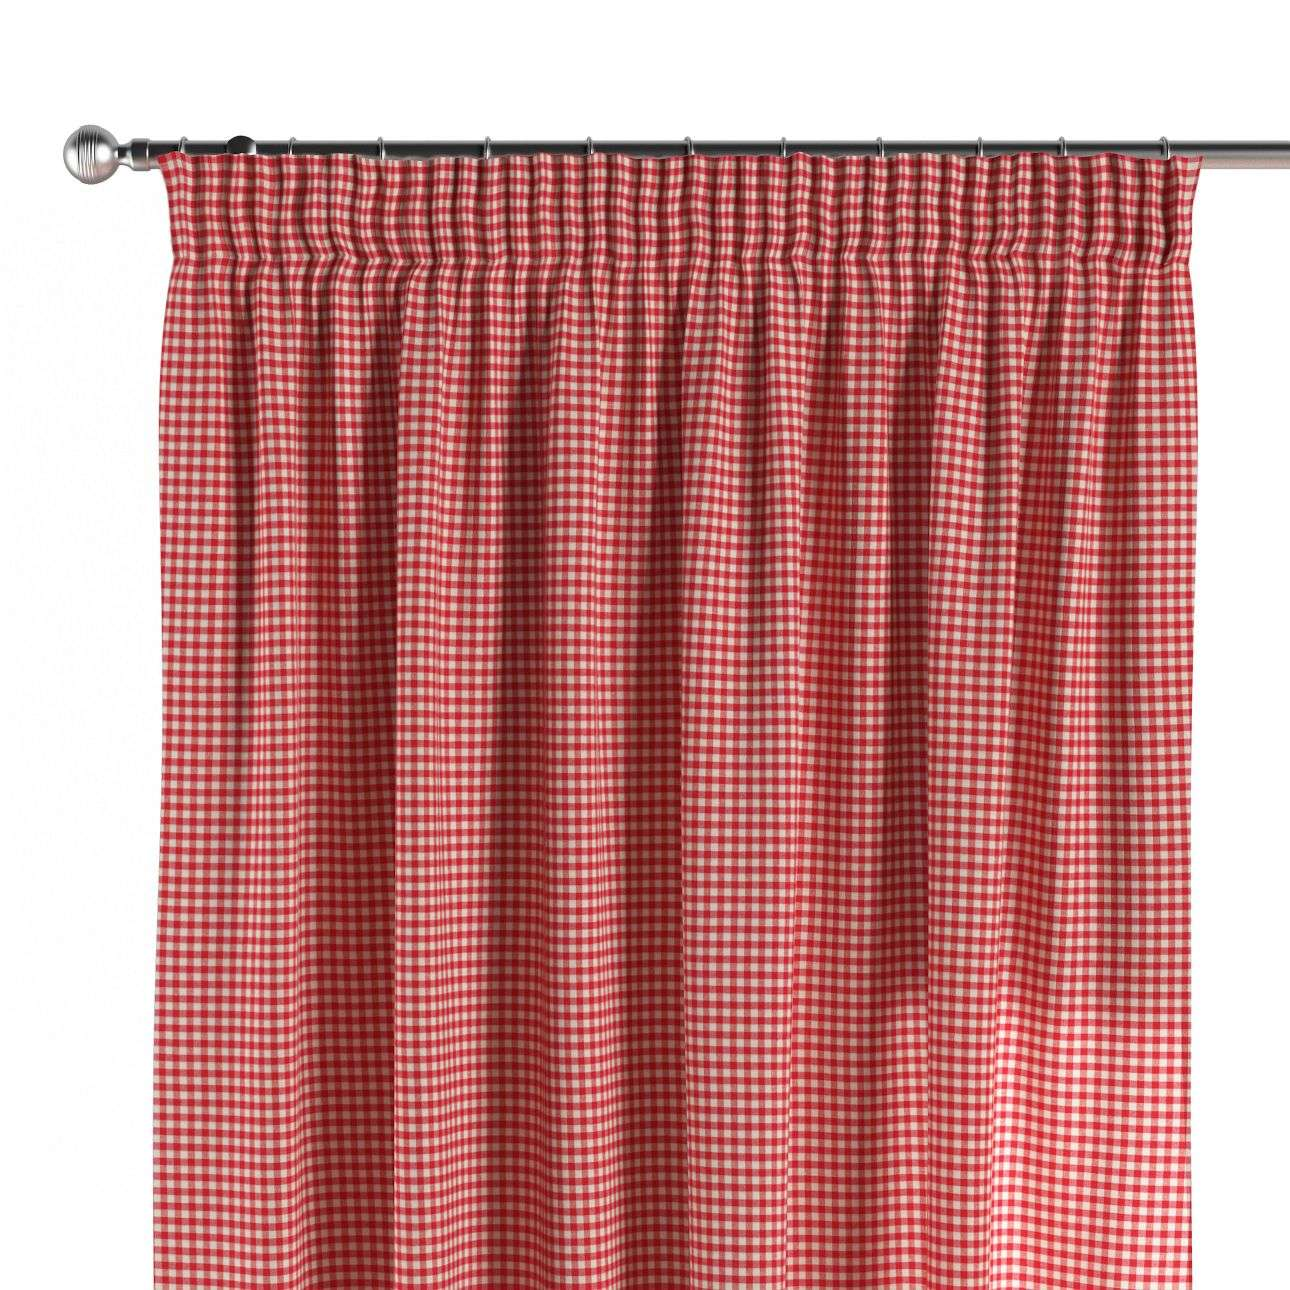 Pencil pleat curtains 130 x 260 cm (51 x 102 inch) in collection Quadro, fabric: 136-15